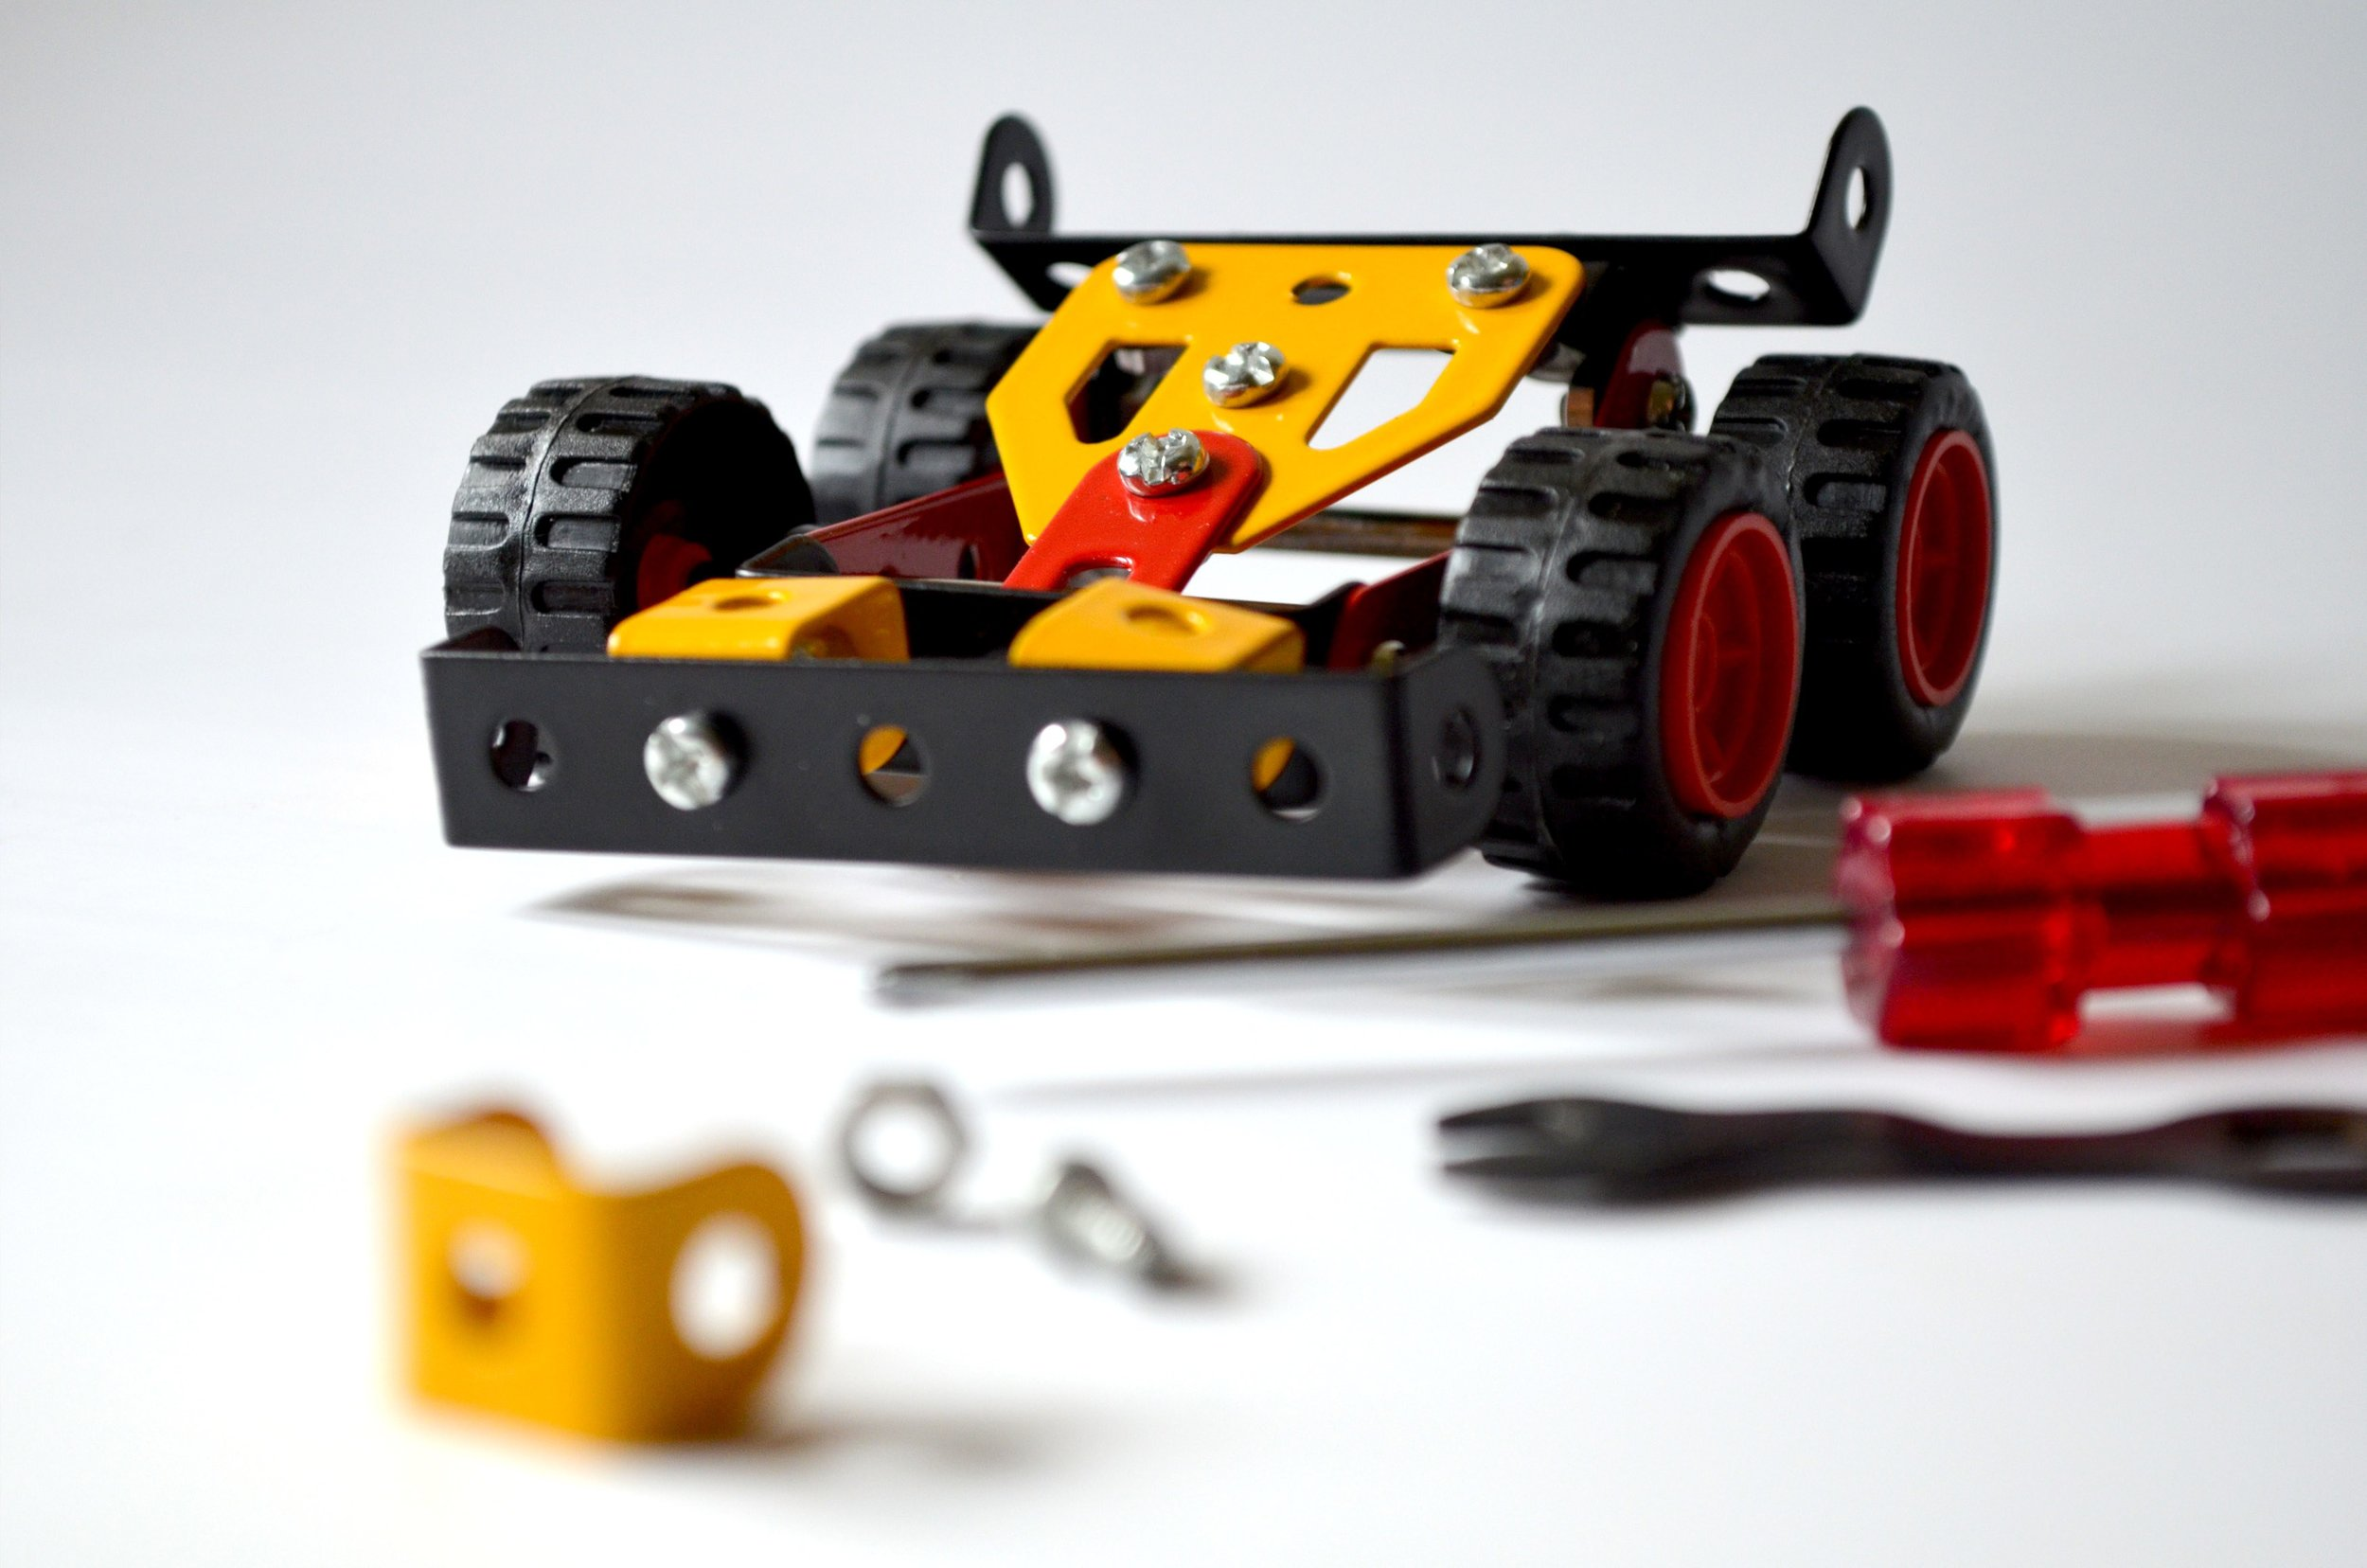 boss-fight-stock-images-photos-free-photography-small-car-toy.jpg